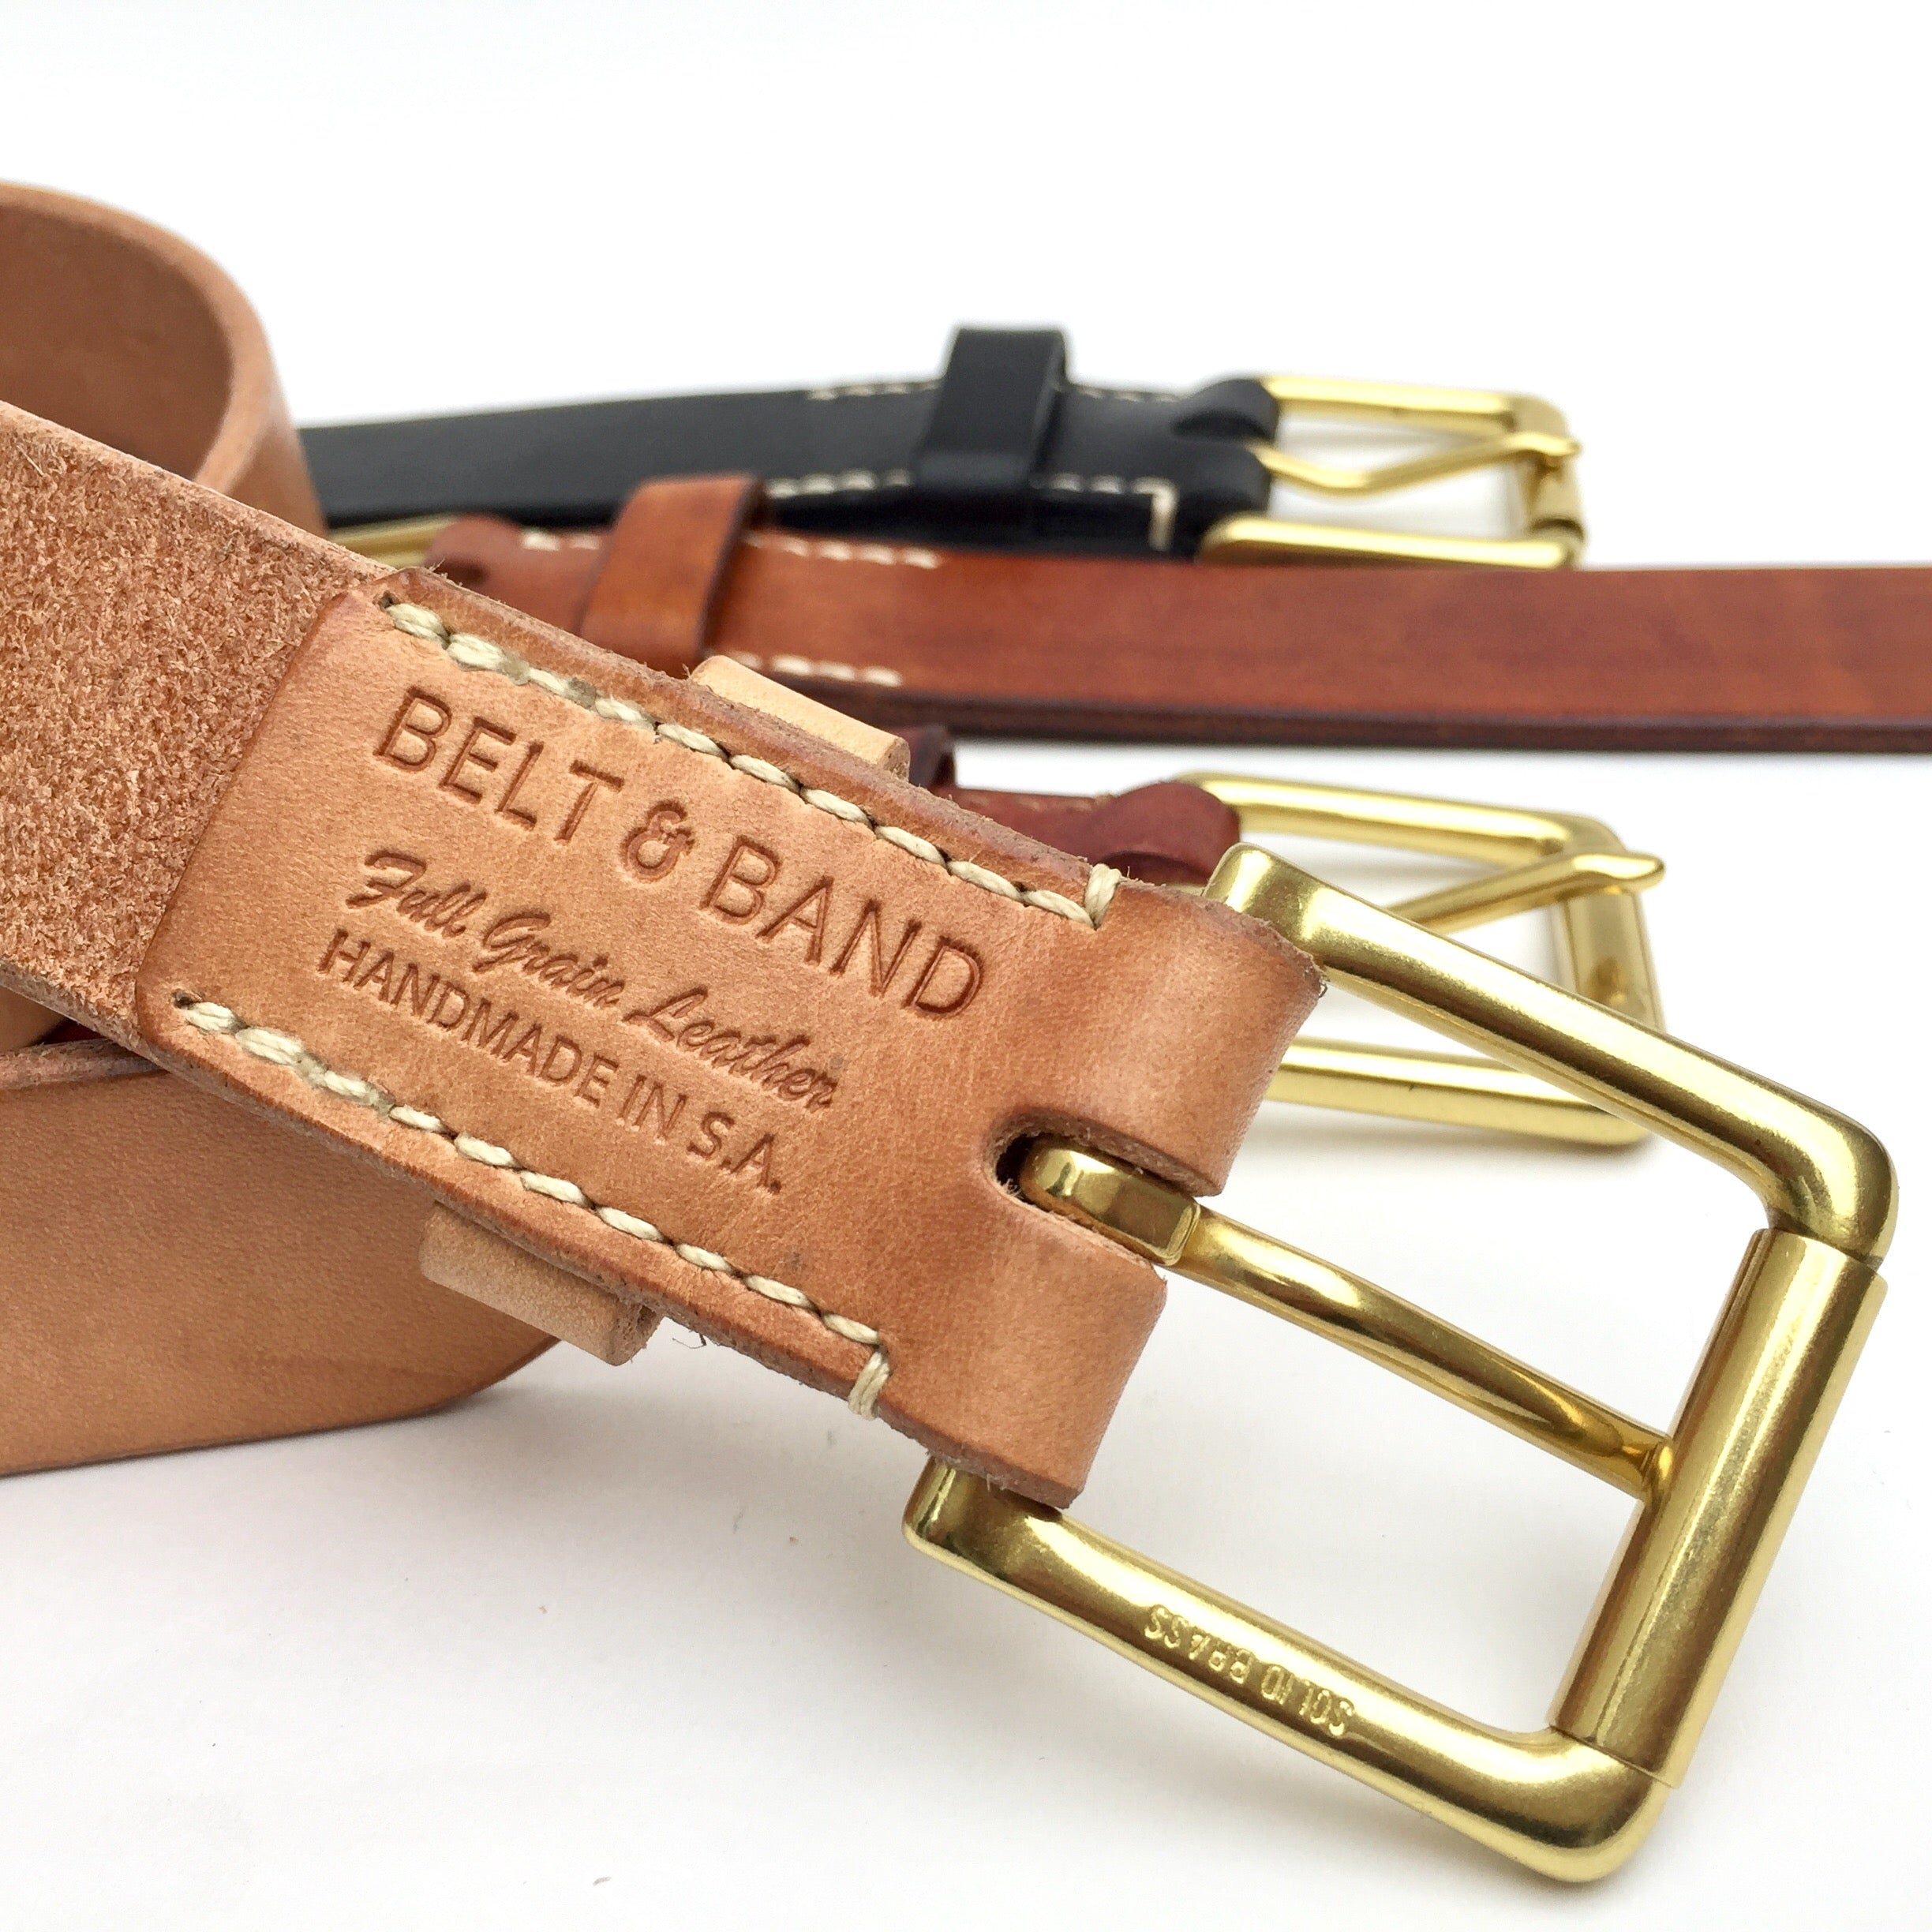 Belt & Band Handmade Natural Vegtable Tanned Leather Belt Solid Brass Roller Buckle Custom Size length